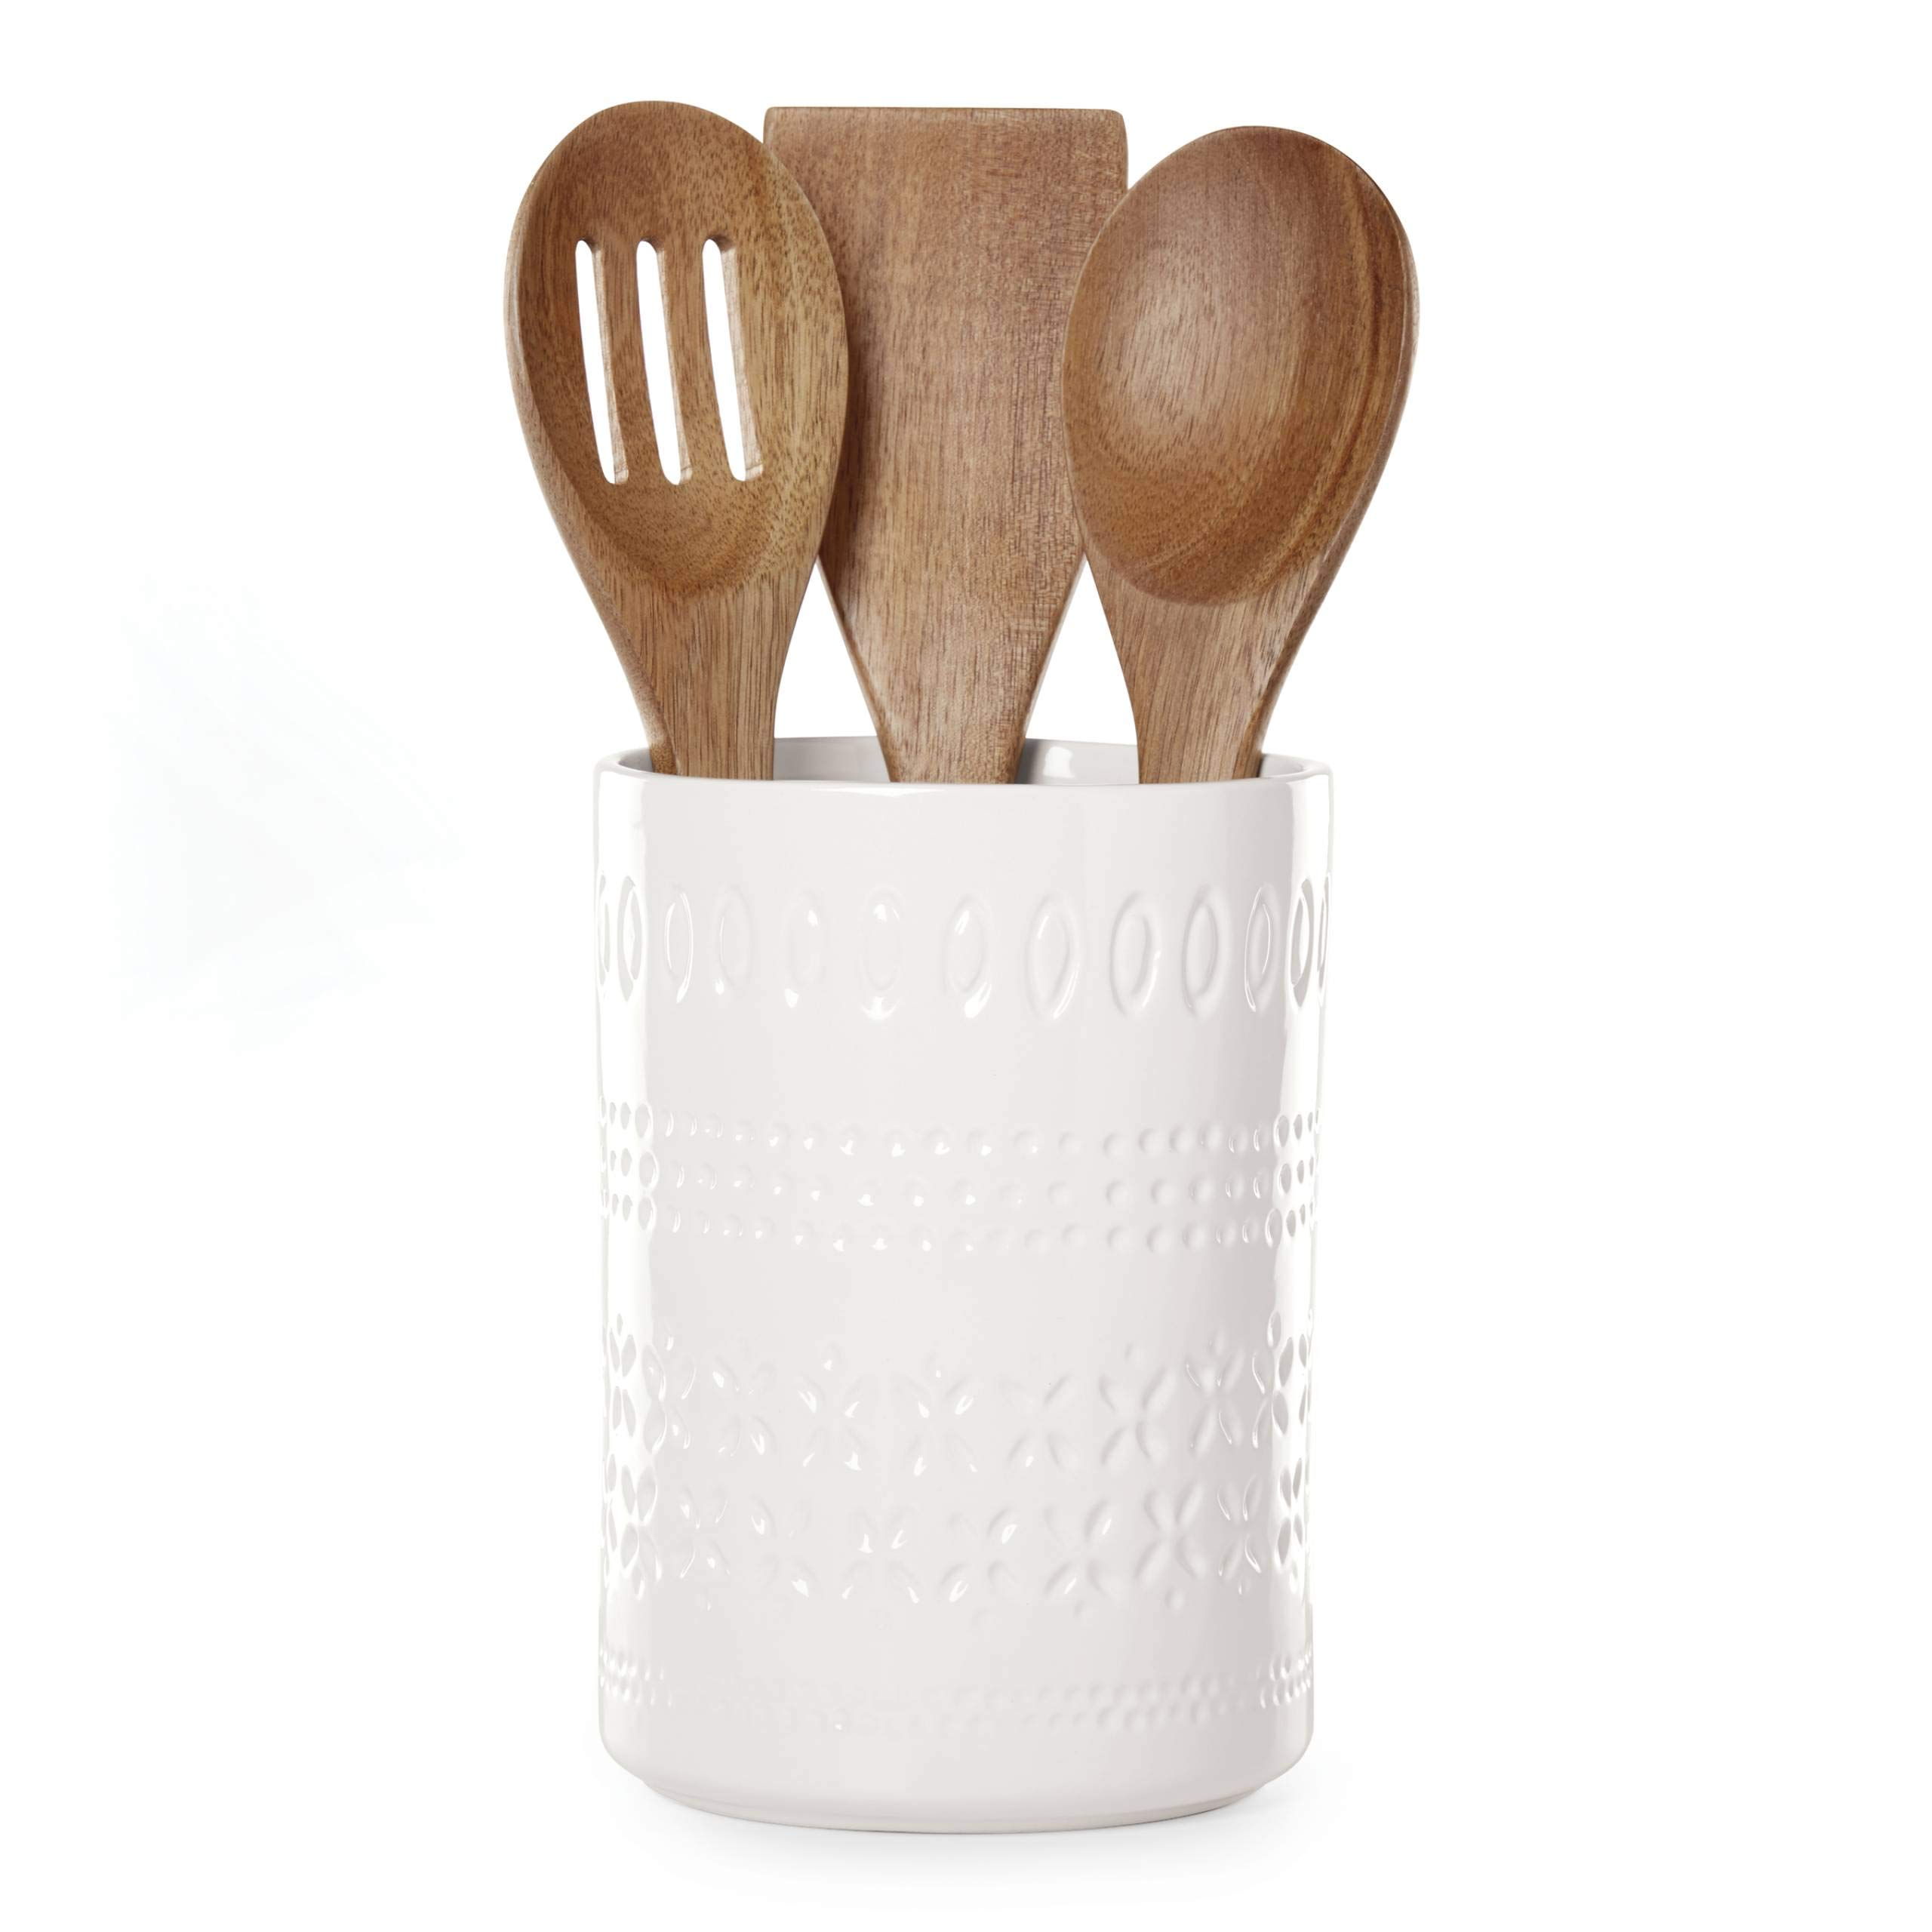 Kate Spade New York 886578 Willow Drive utensil crock, Cream by Kate Spade New York